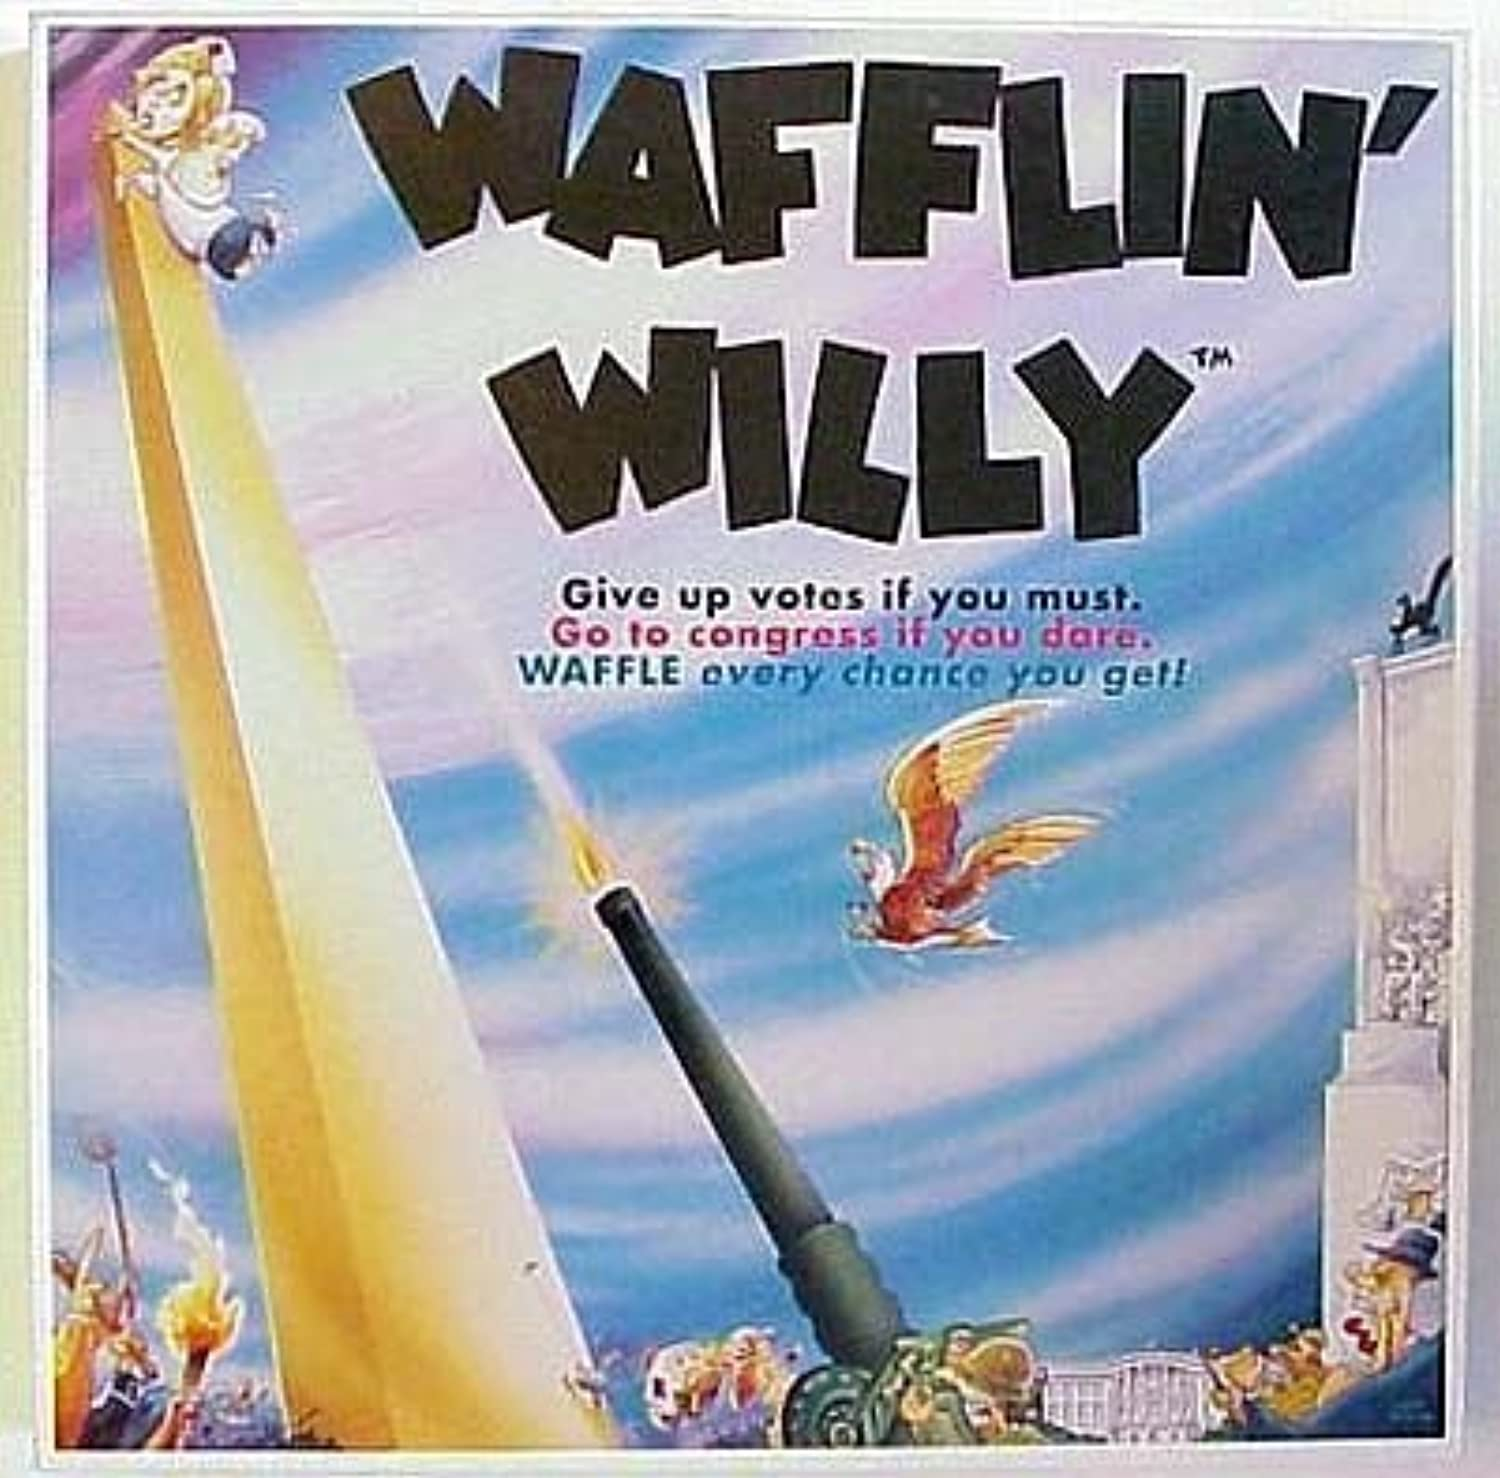 Wafflin Willy Waffling Bill Clinton Board Game by Right Angle